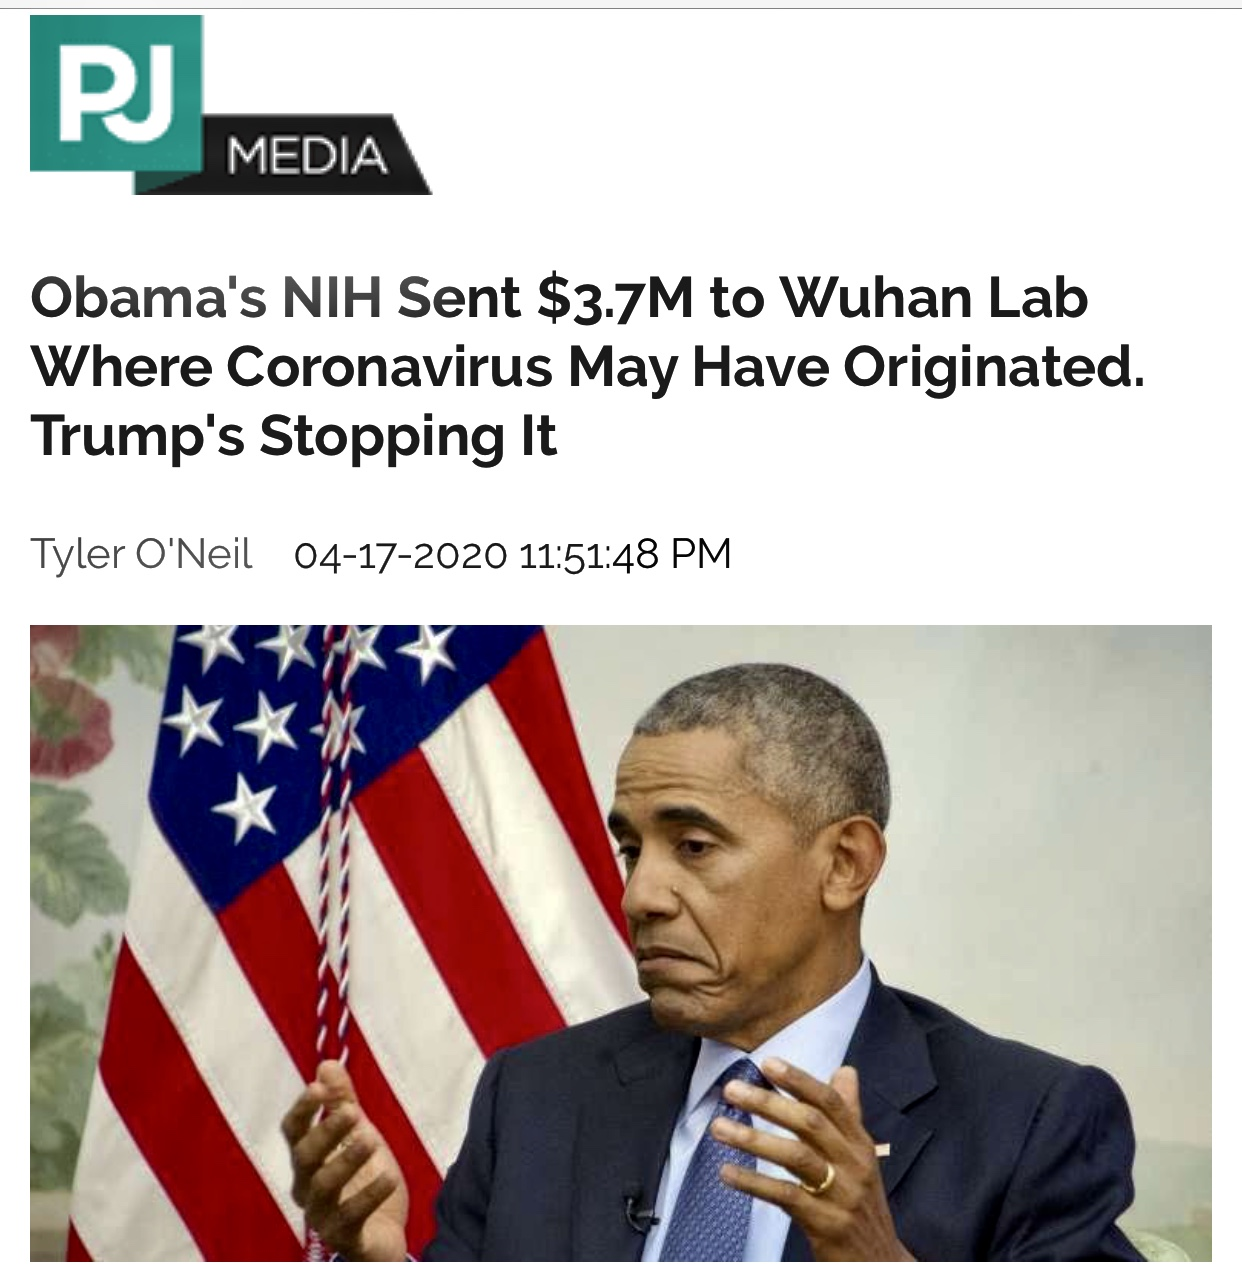 Obama's NIH Sent $3.7M to Wuhan Lab